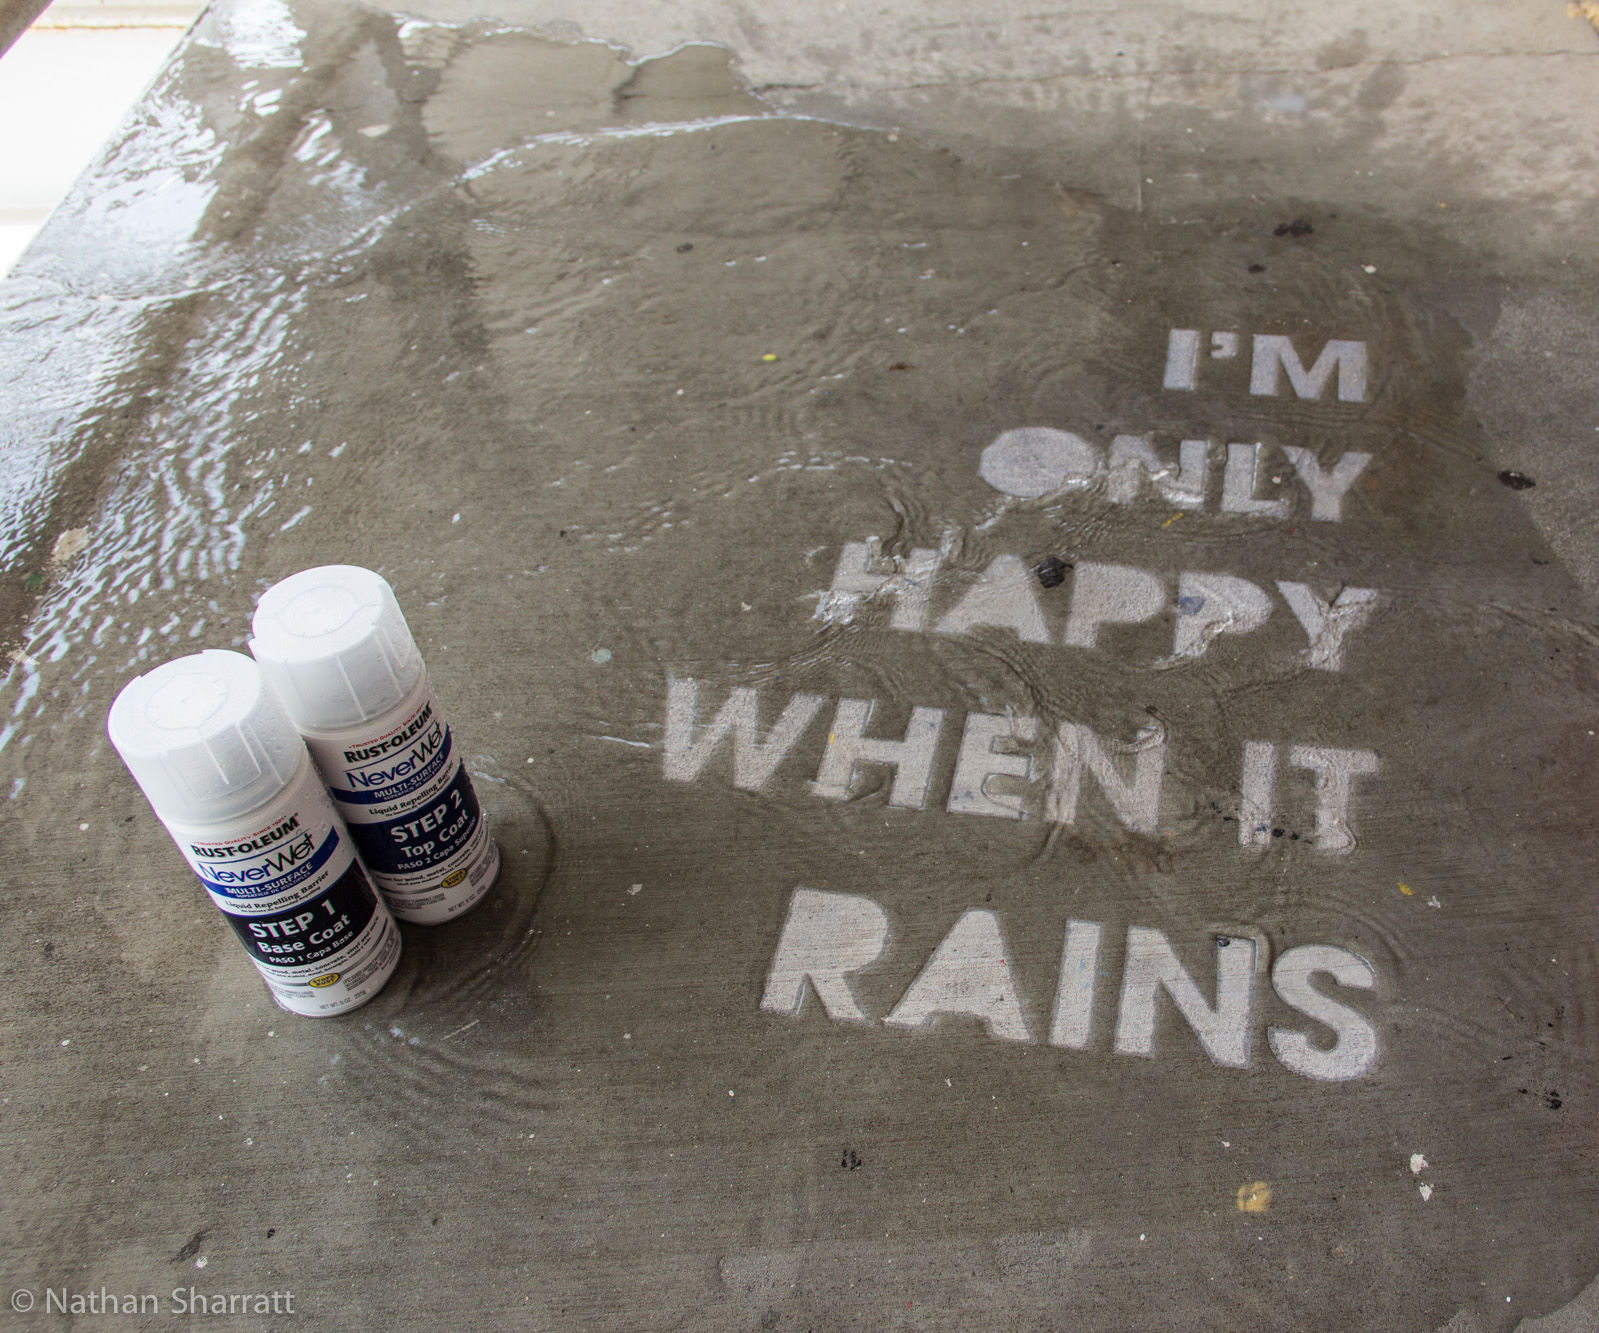 How to make Rain Drawings with NeverWet superhydrophobic coating